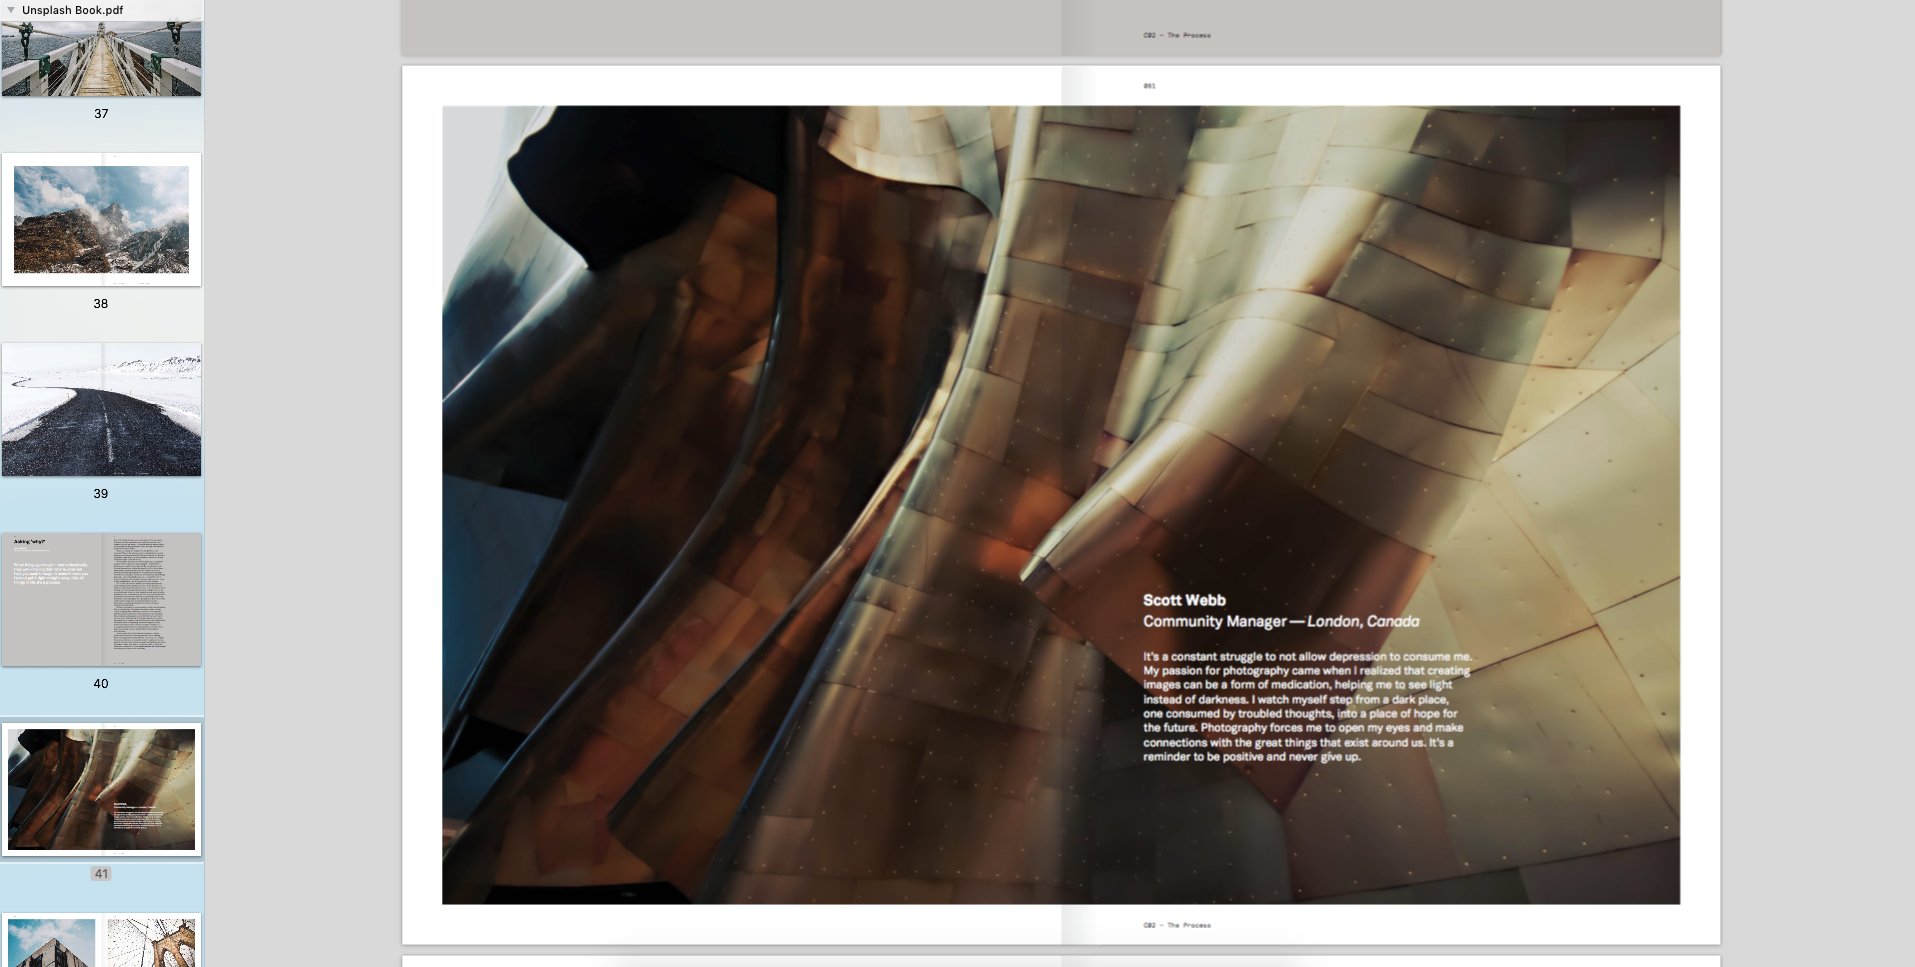 Digital image of my architectural photo in the Unsplash Book